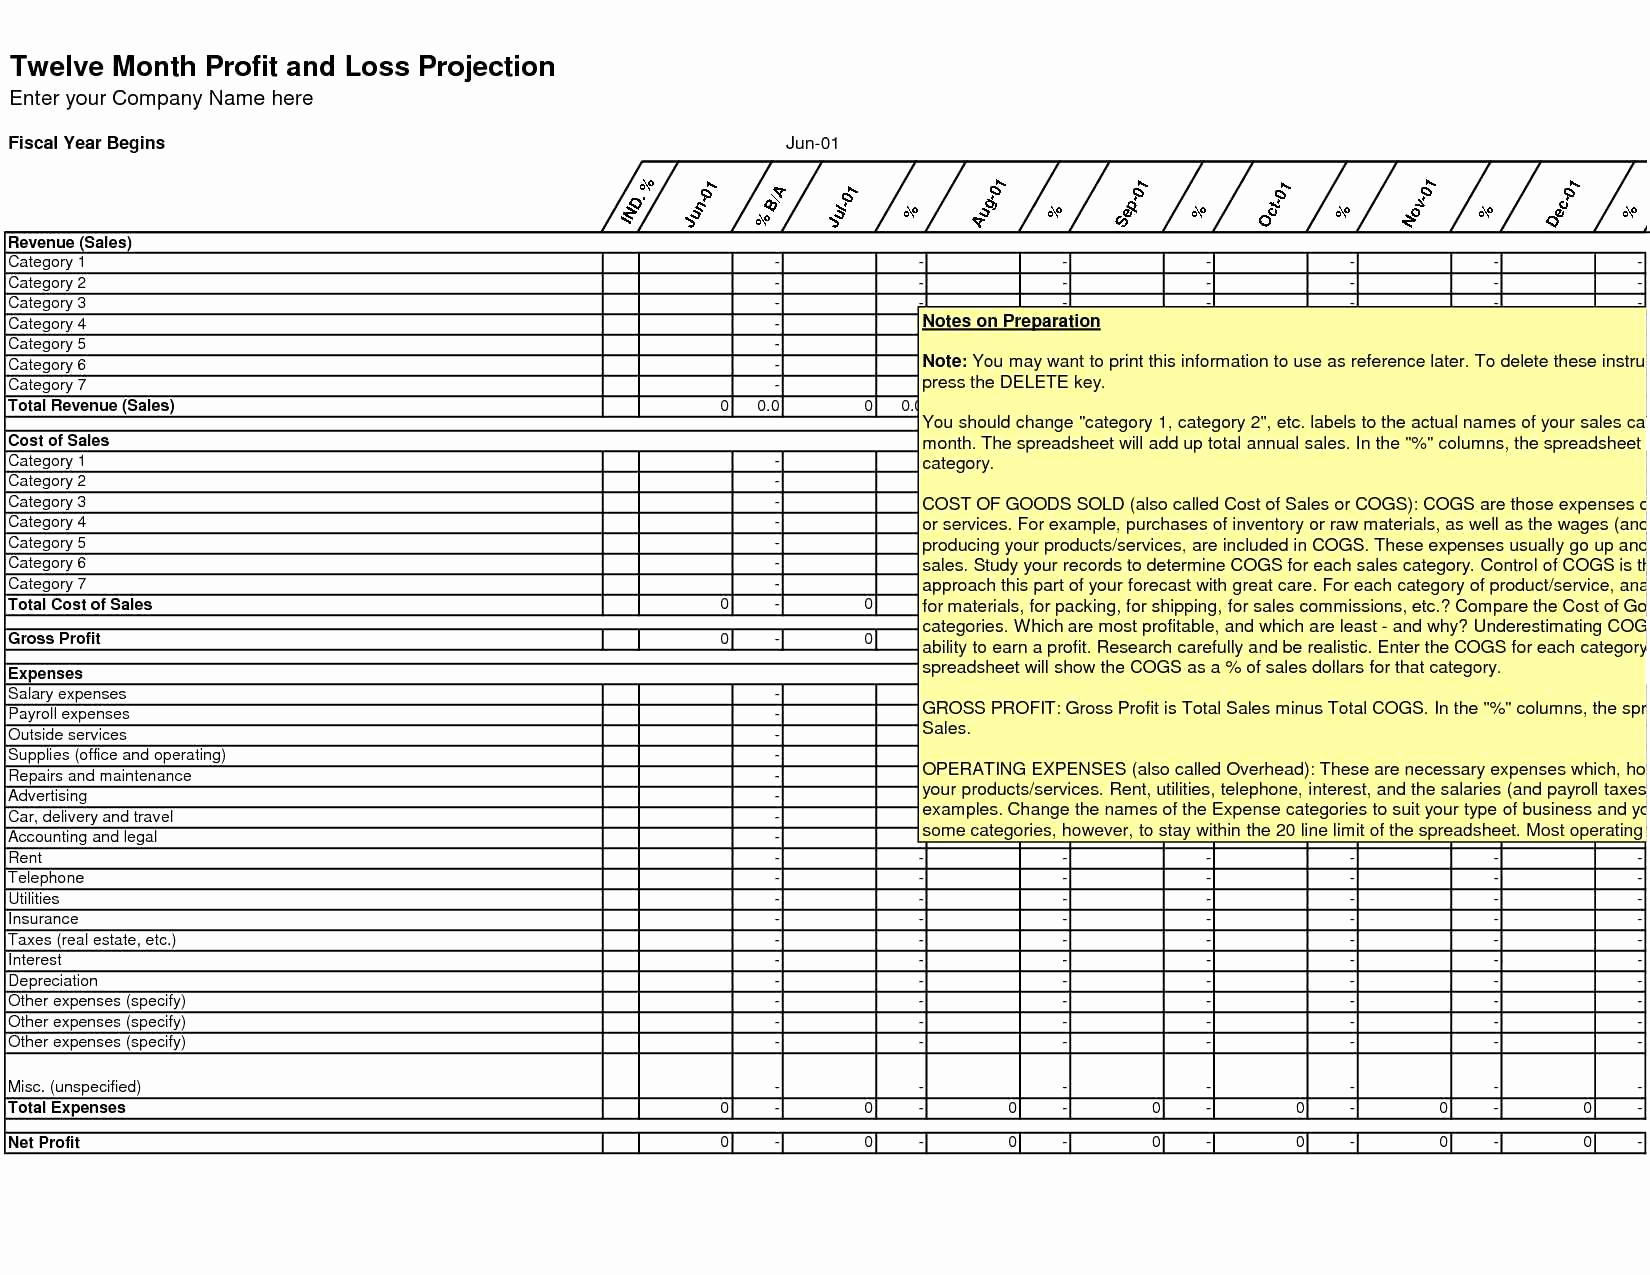 Spreadsheet Template For Tax Return With Tax Return Spreadsheet Unique Tax Return Spreadsheet Template To Tax